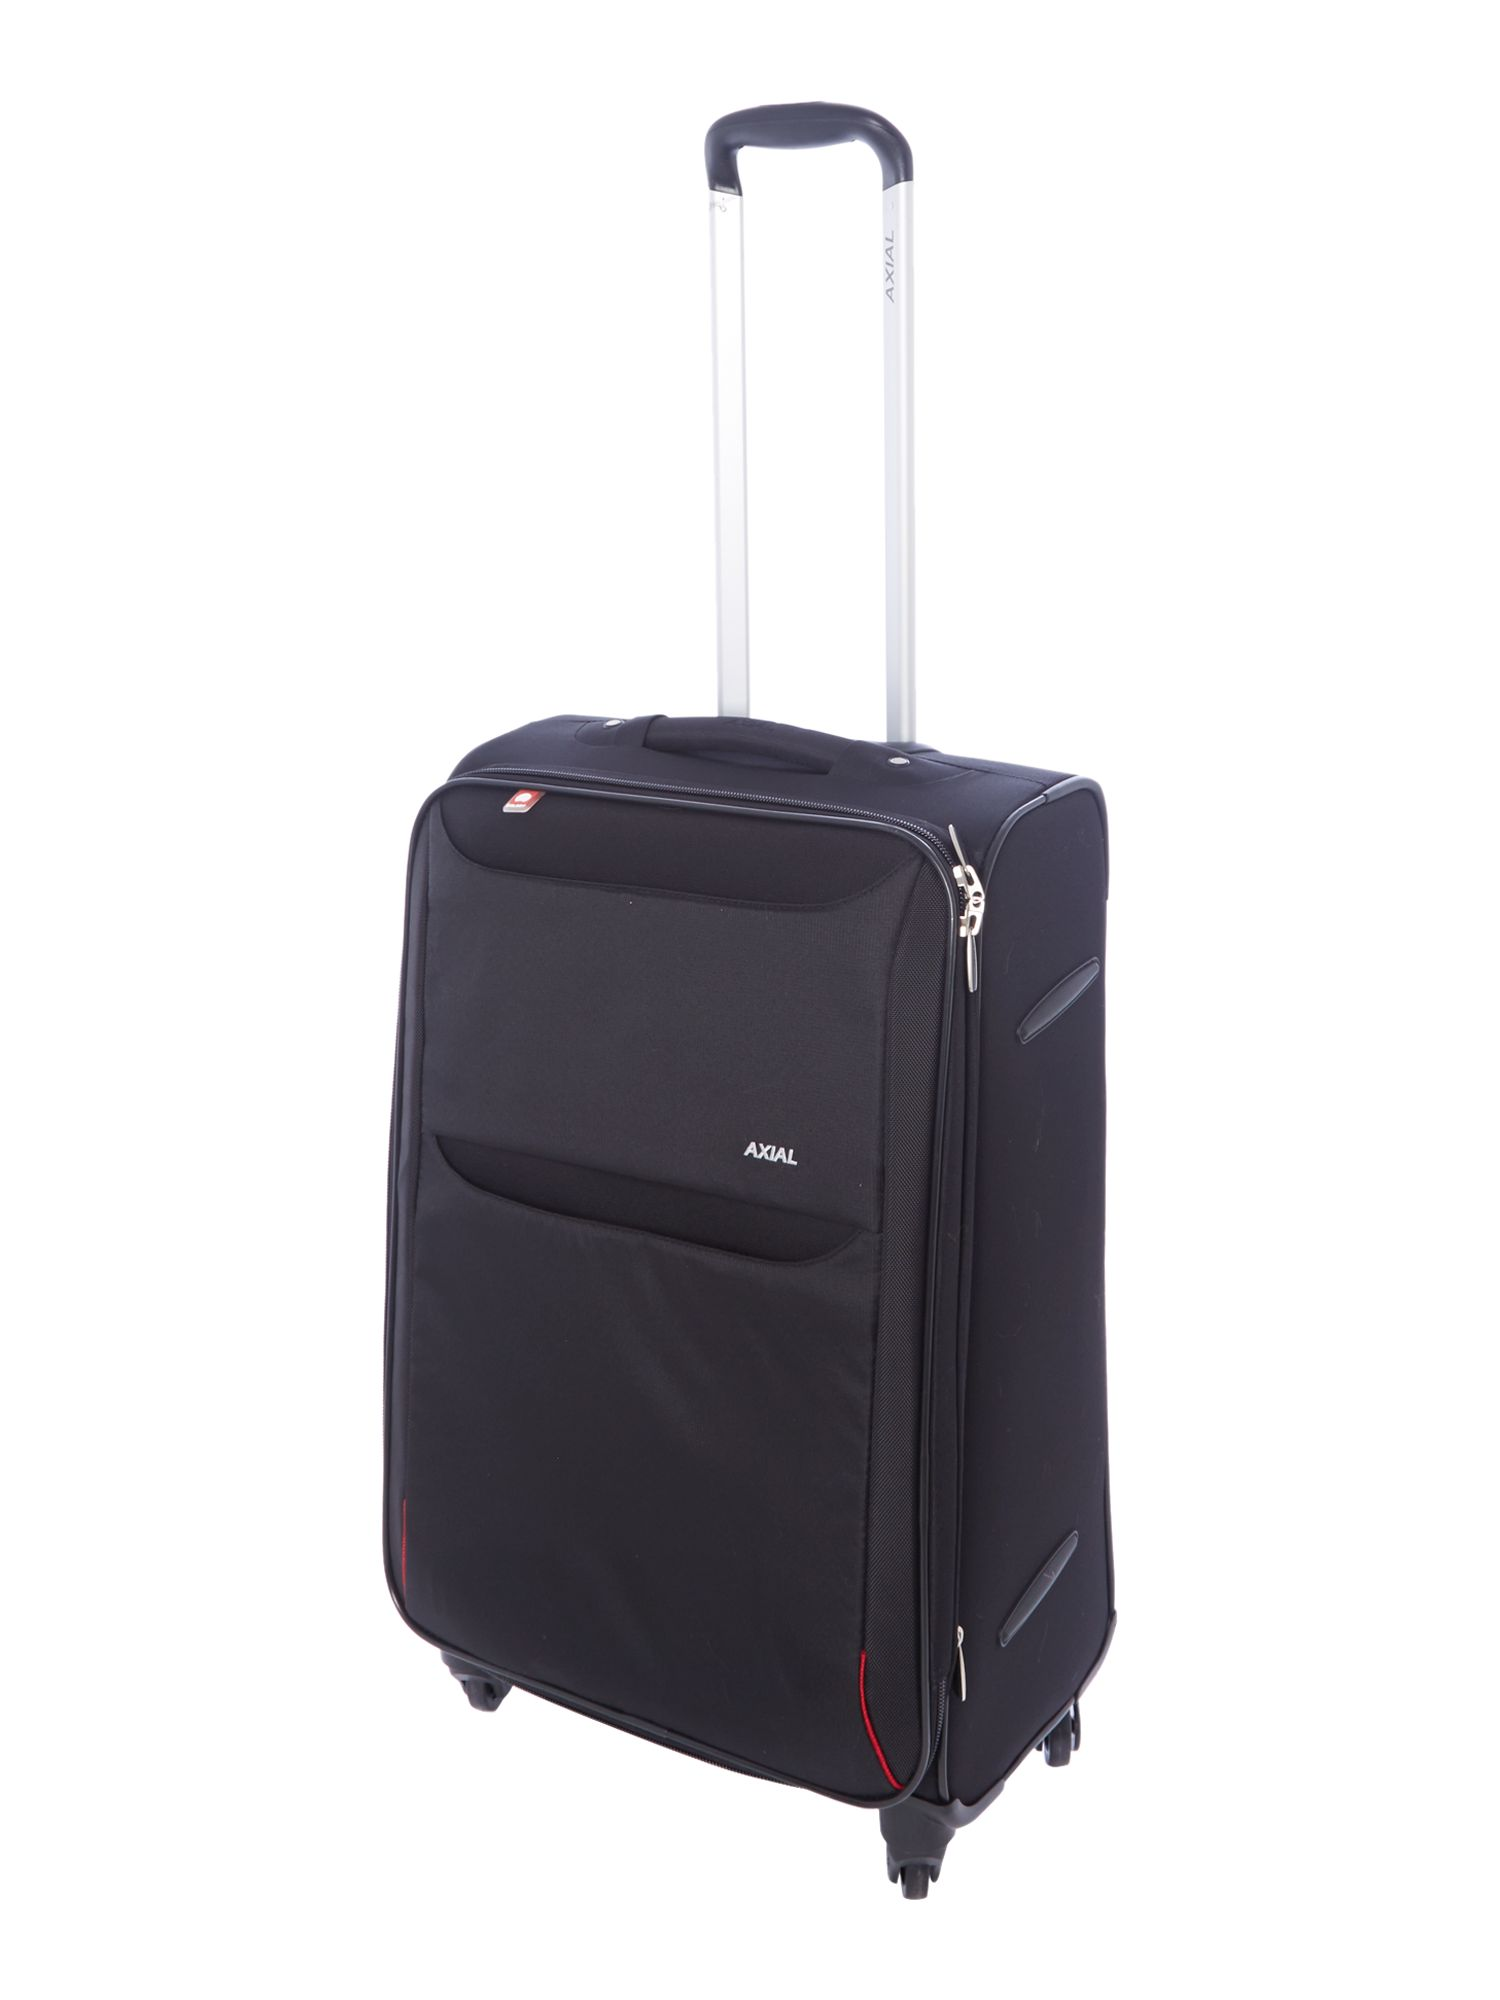 Delsey Axial 350 black 4 wheel soft medium case